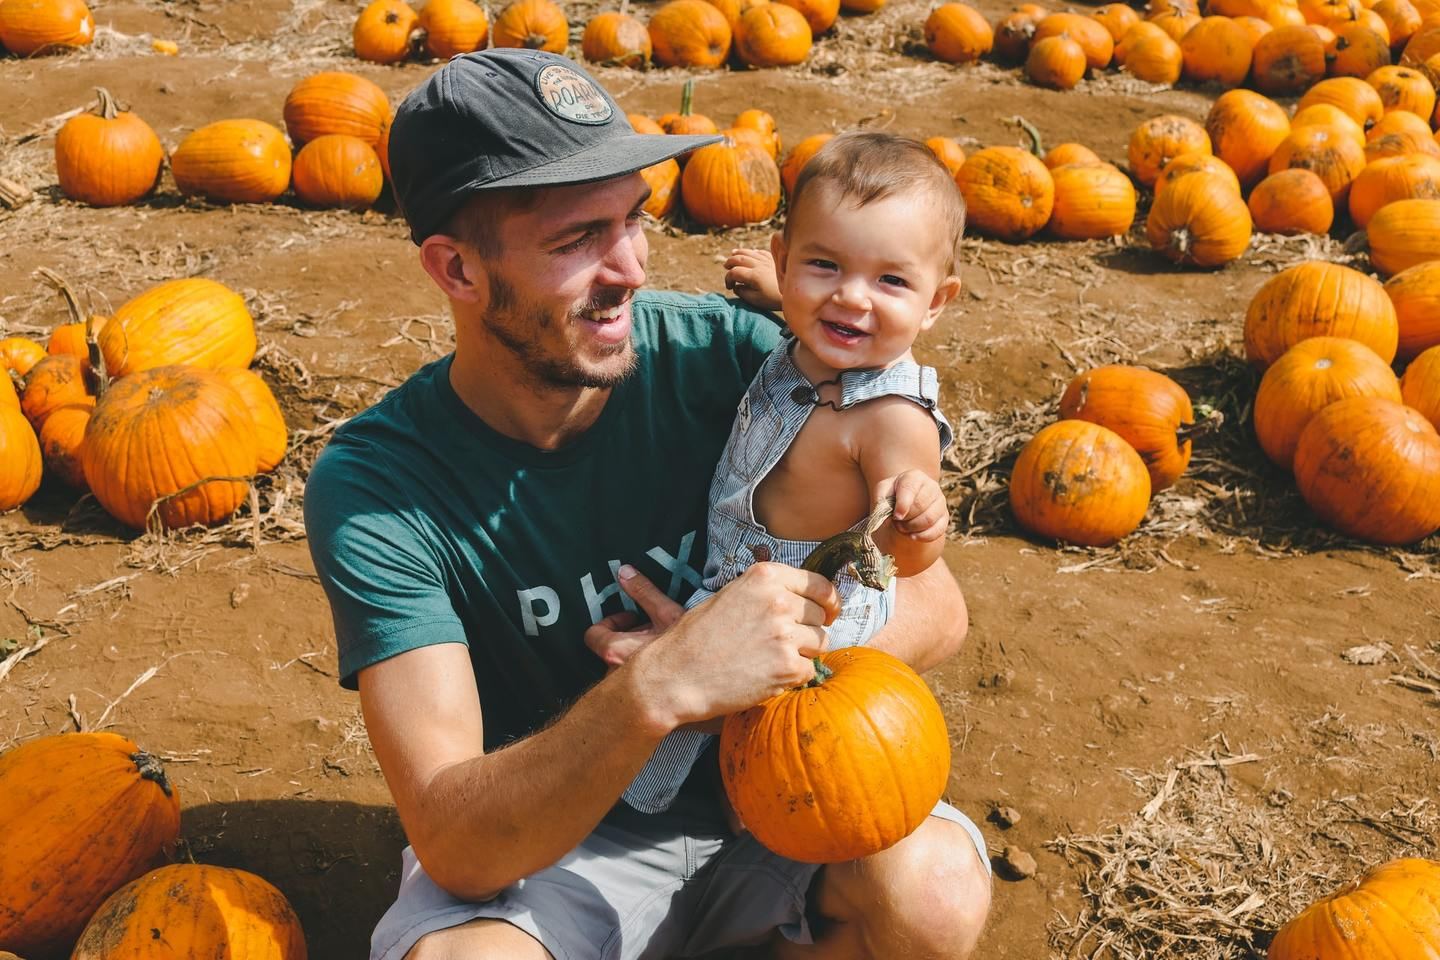 A parent and baby in a pumpkin patch